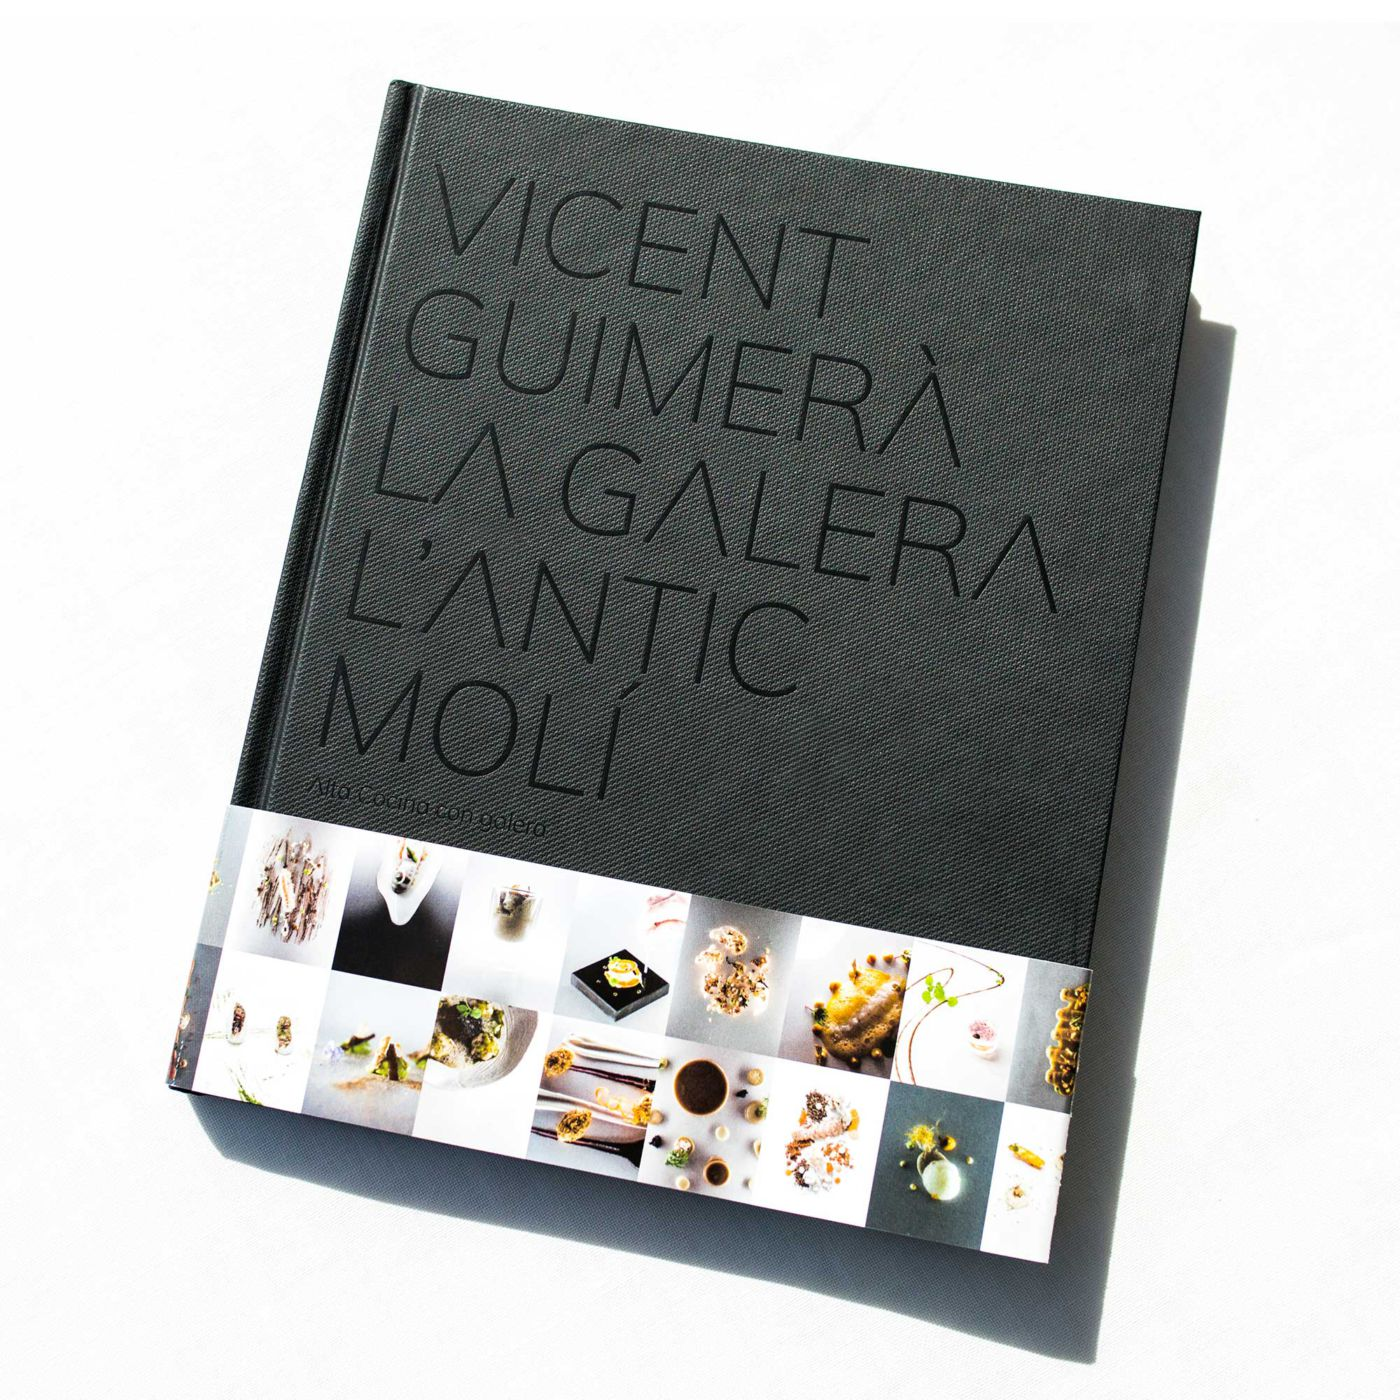 llibre-galera-antic-moli-vicent-guimera